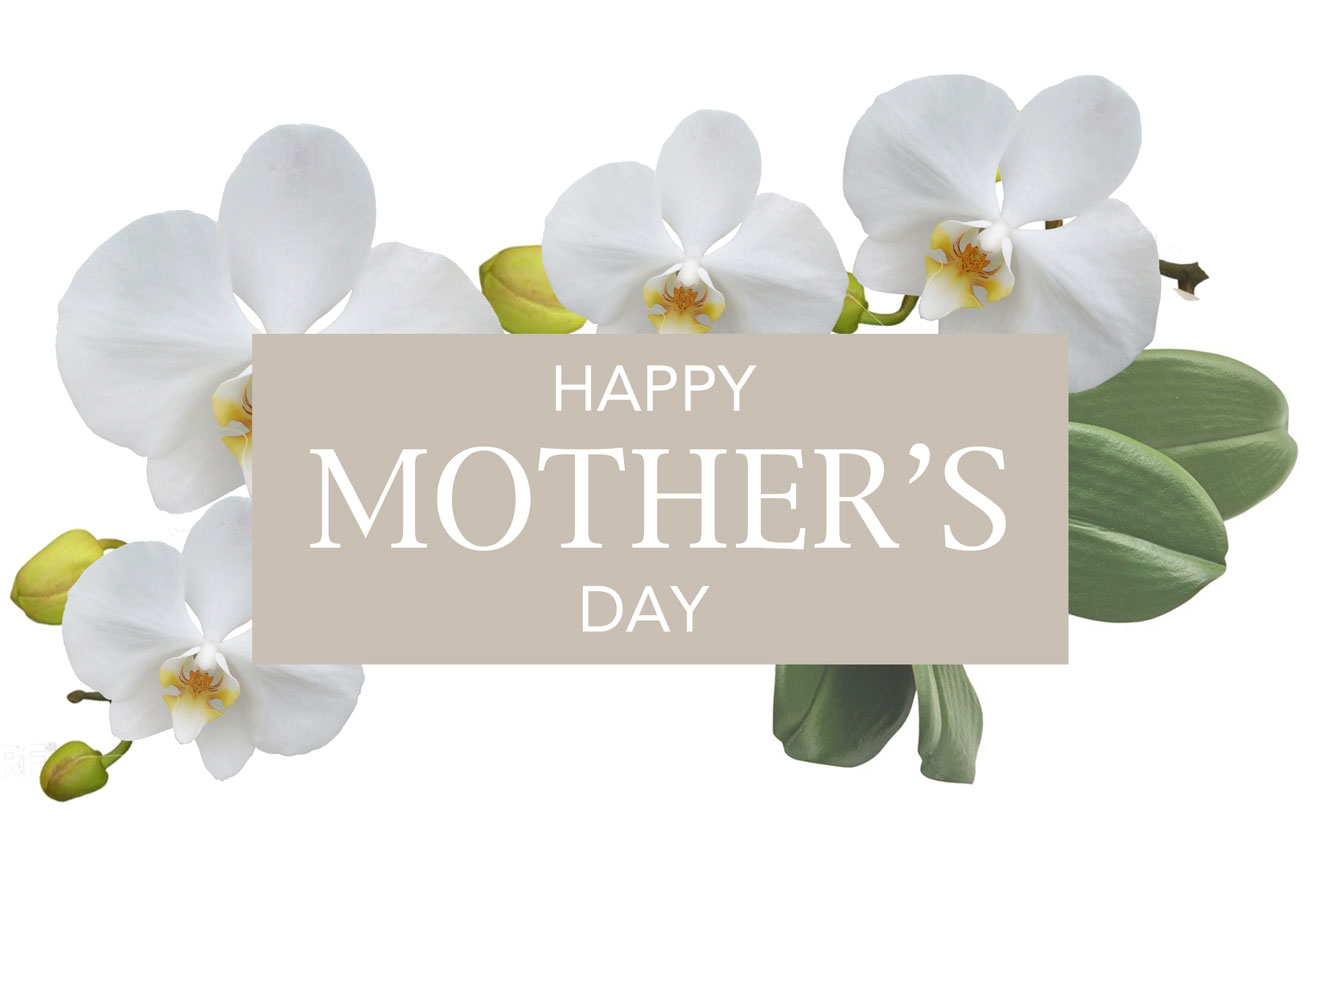 Jenny Blanc Blog - Happy Mothers Day Image